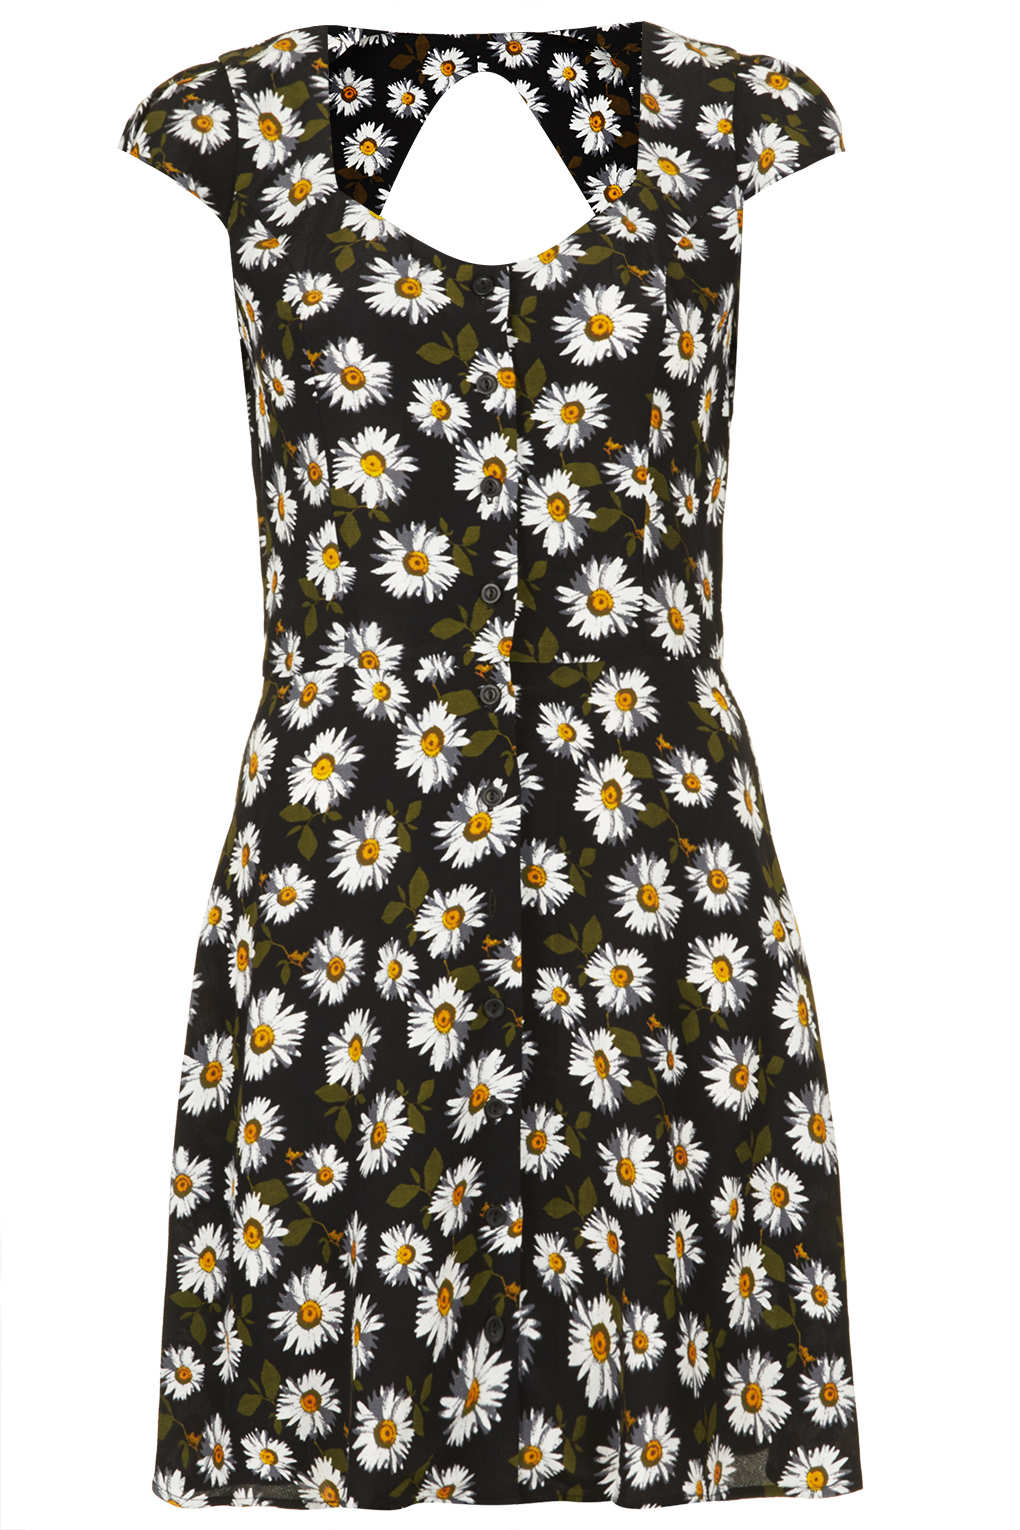 Lyst Topshop Daisy Open Back Tea Dress In Black